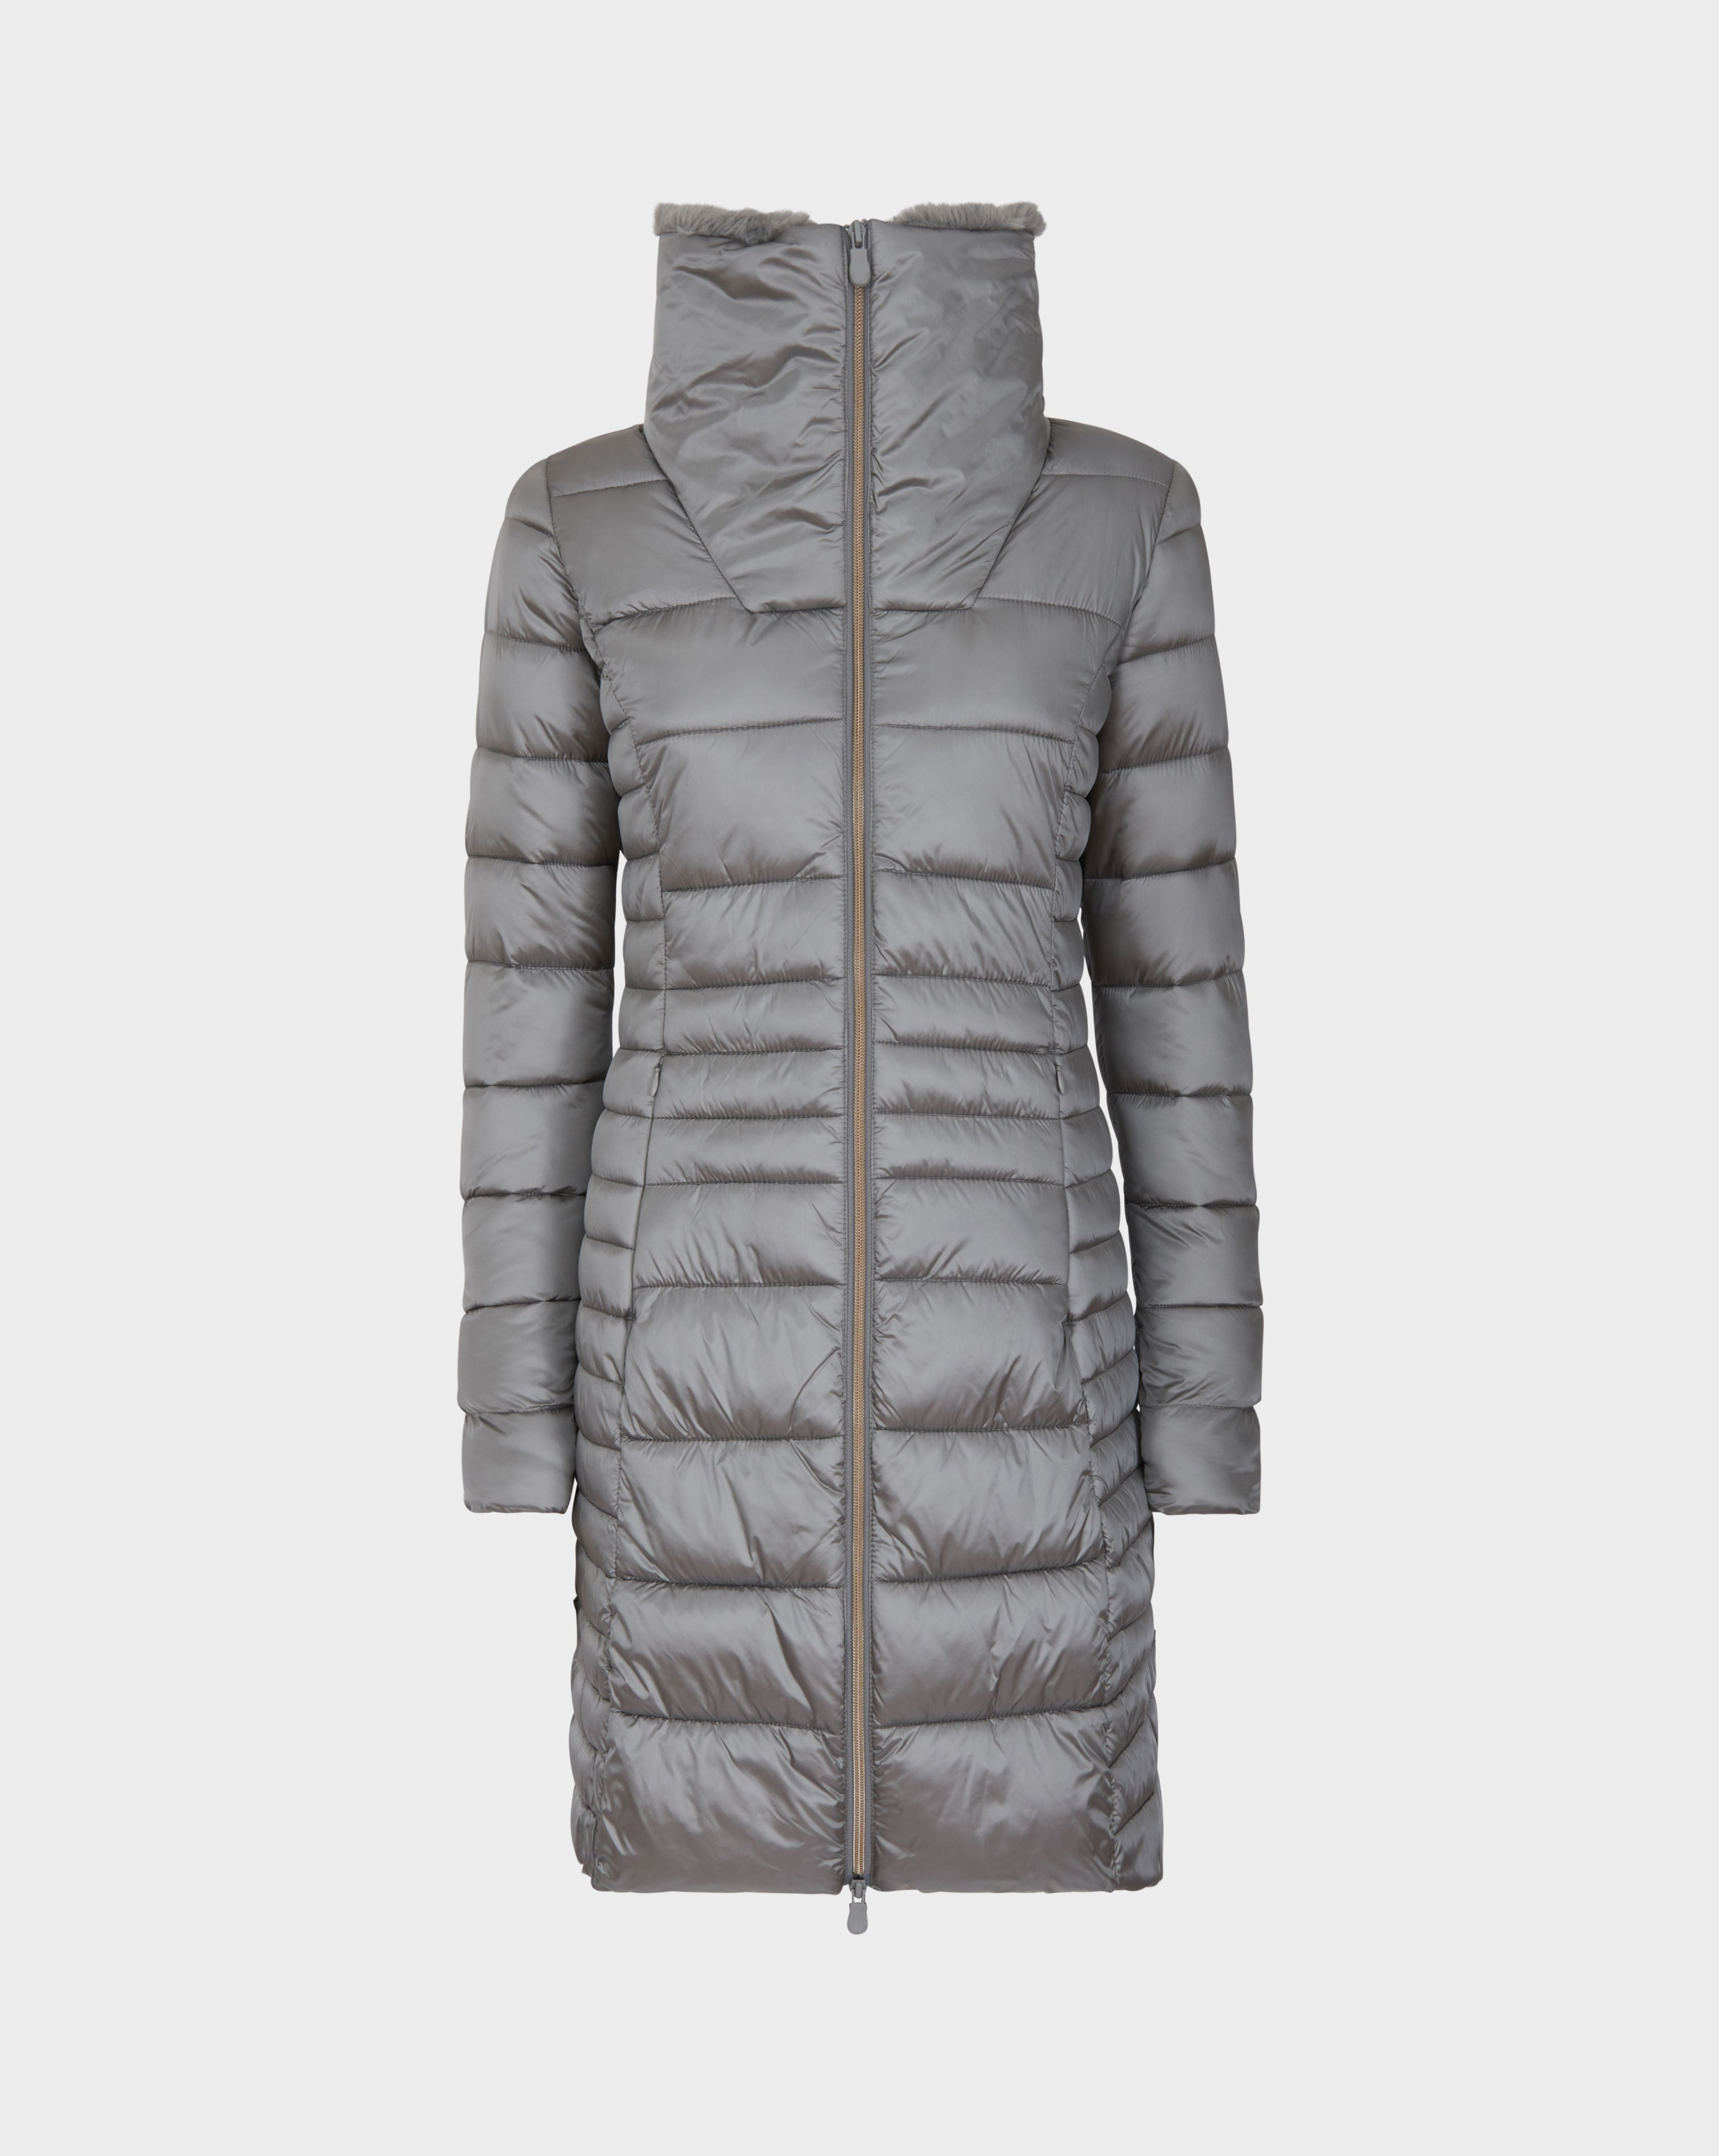 Womens IRIS Winter Coat in Shark Grey